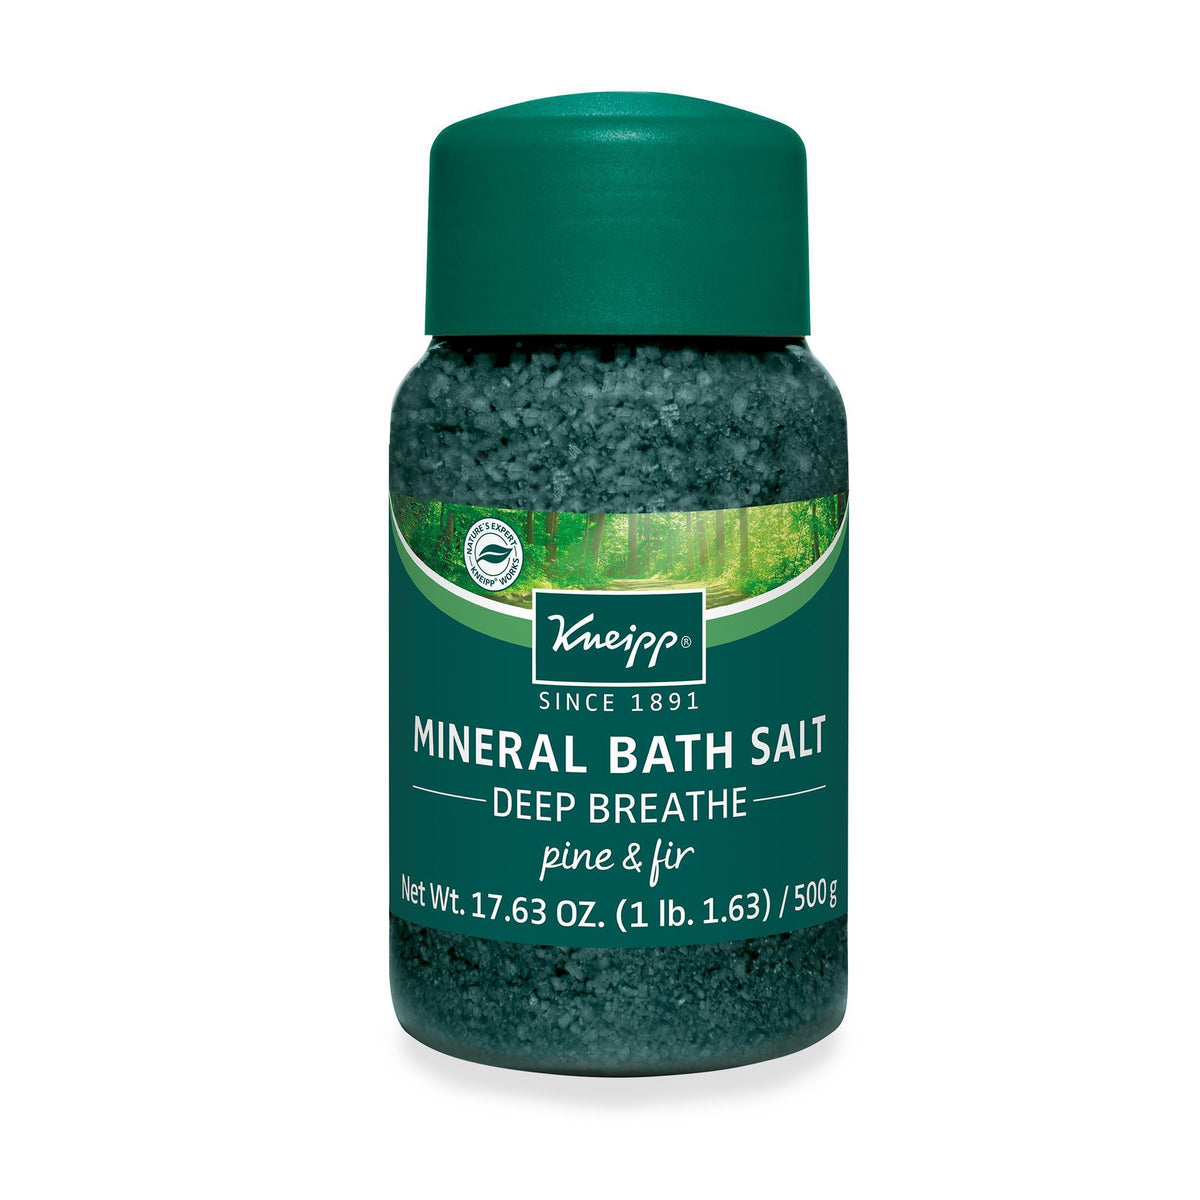 Kneipp Deep Breathe Mineral Bath Salt